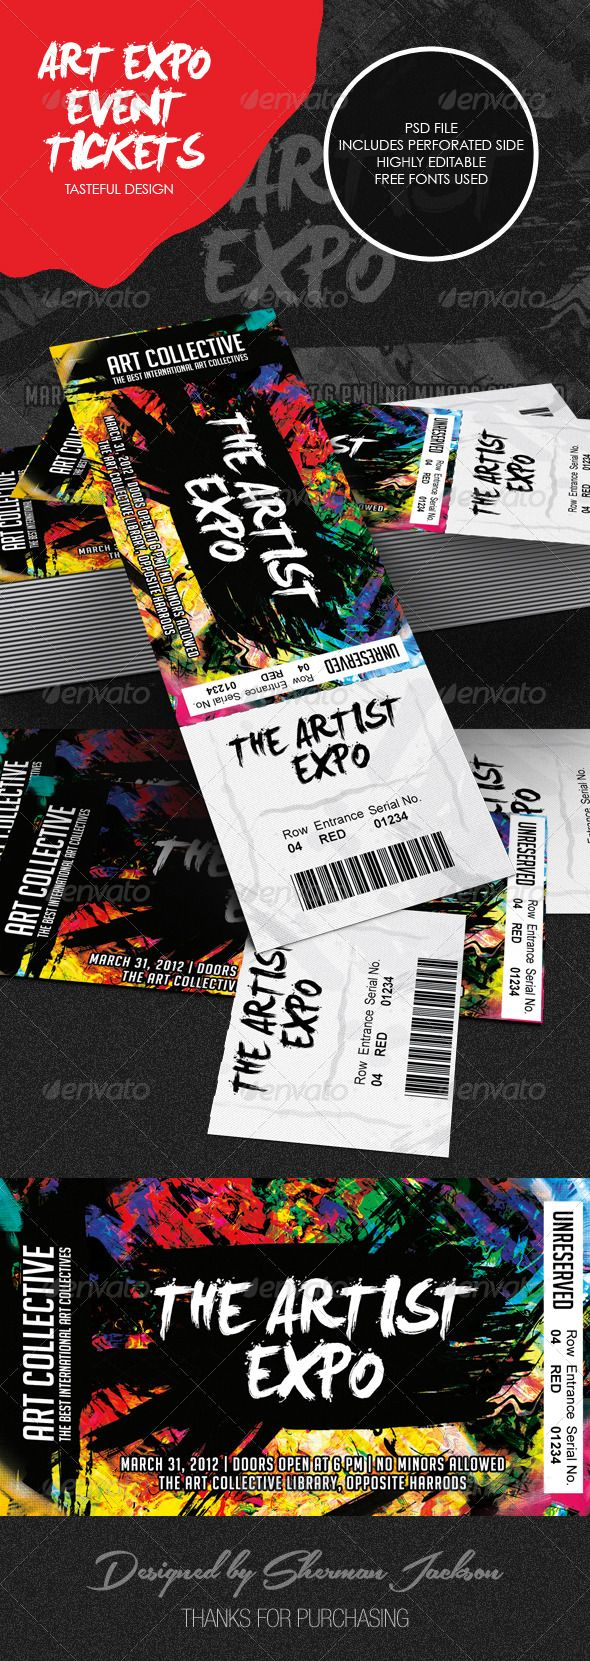 Concert Ticket Template Free Download Prepossessing 14 Best Layoutstext And Images Images On Pinterest  Brochures .